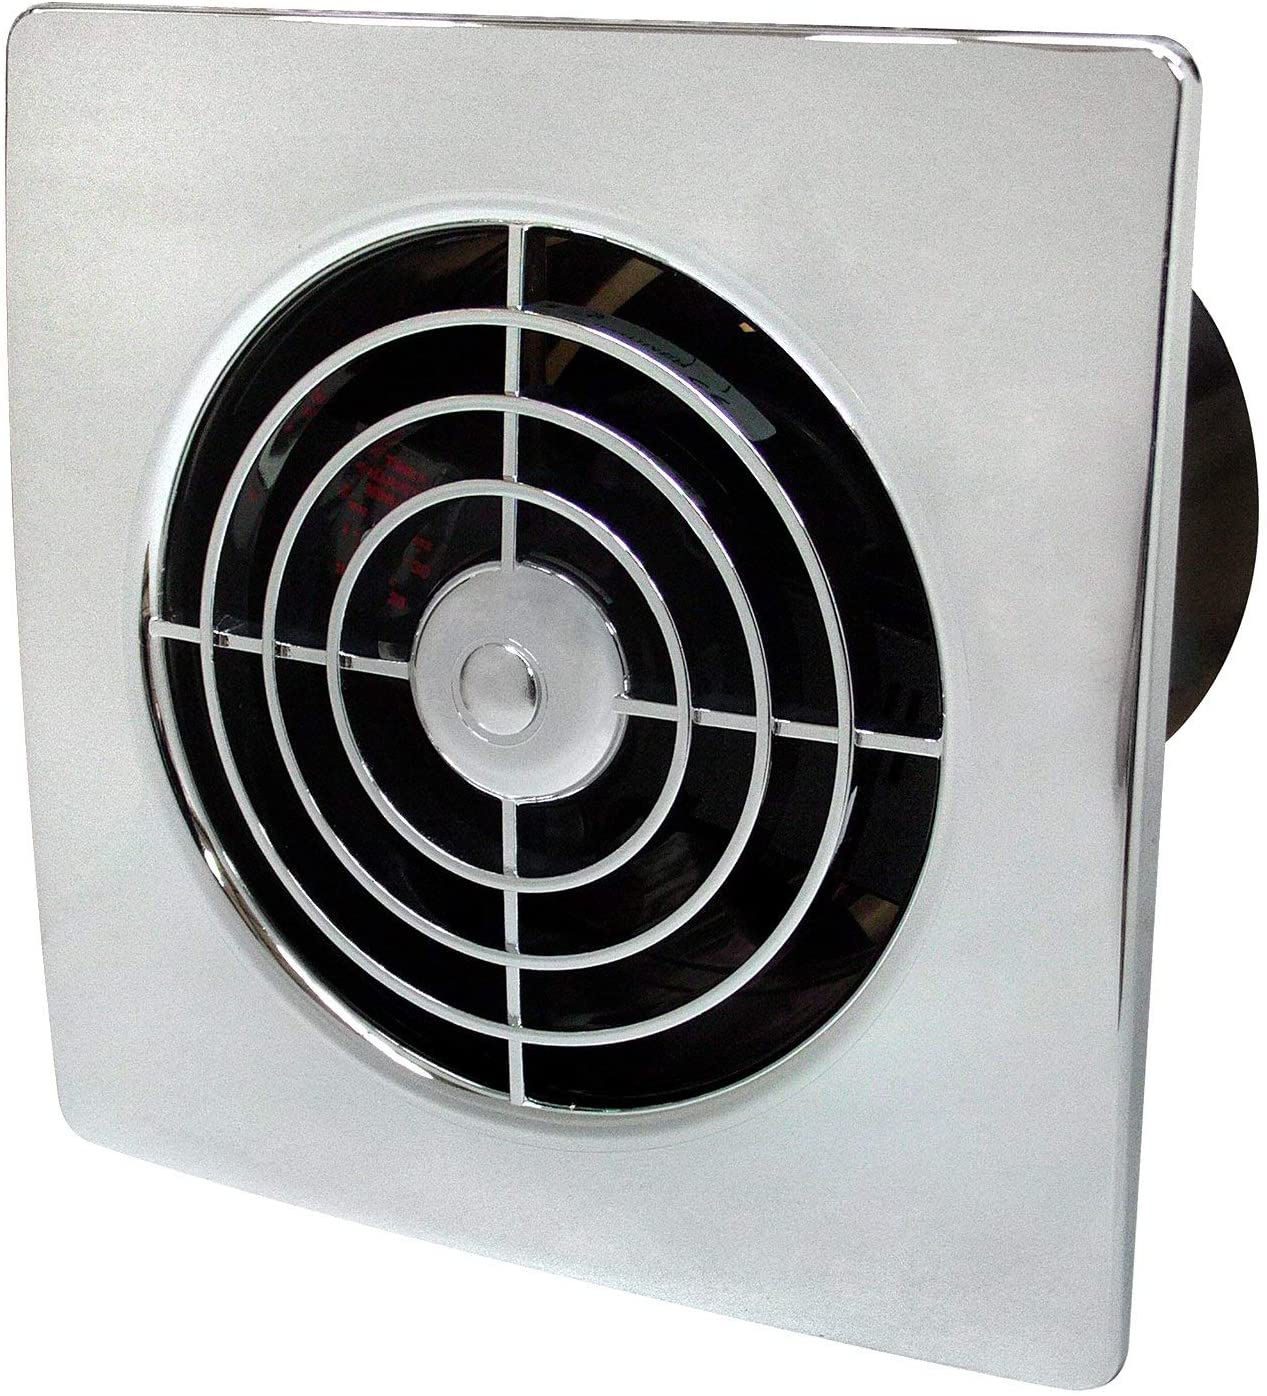 Manrose 100mm Low Profile Extractor Fan/Timer - Chrome